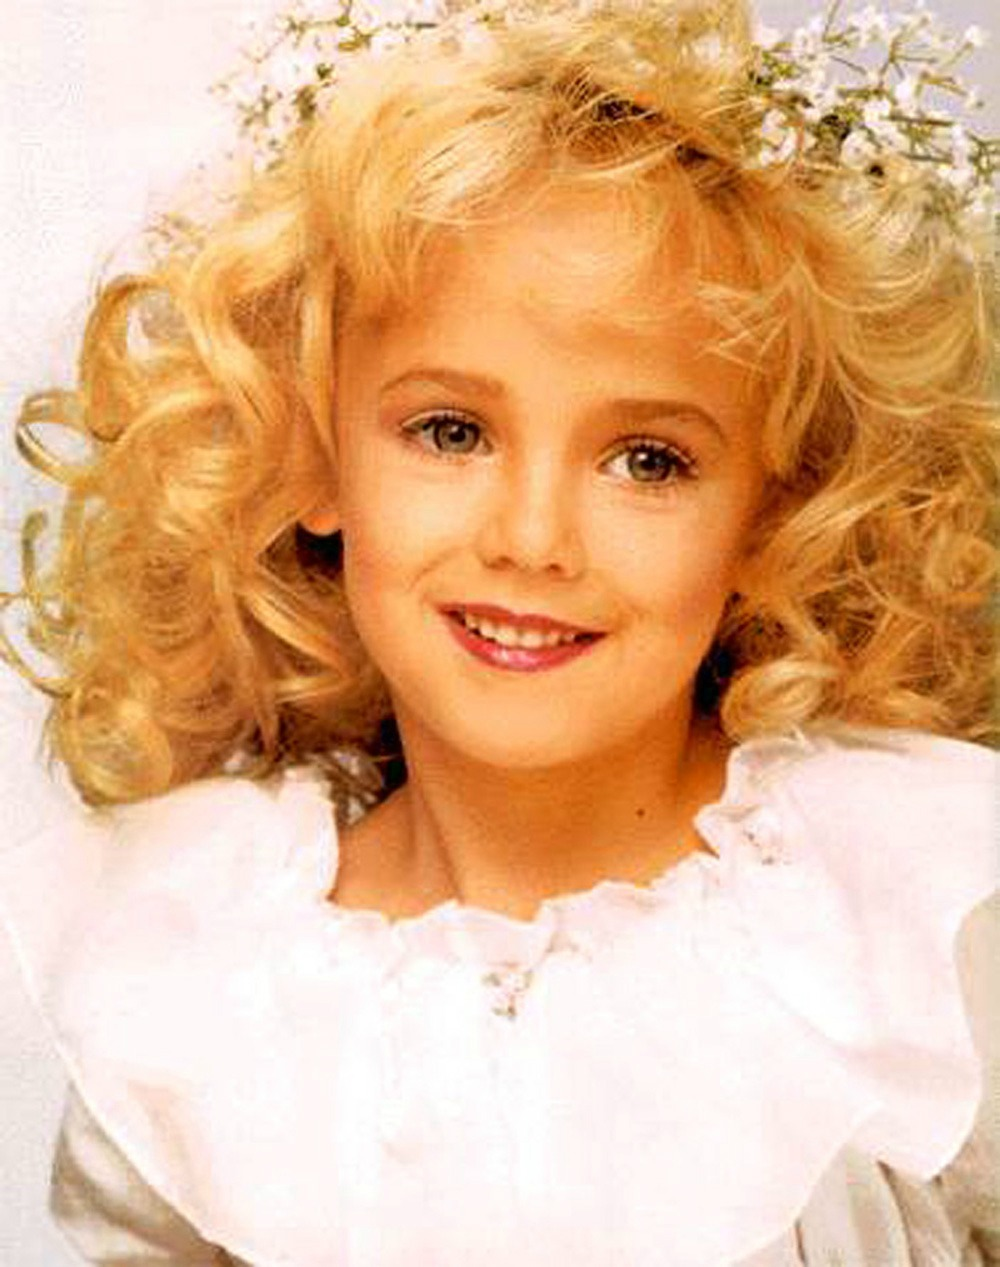 jon bennet ramsey On the contrary, according to an excellent review, new clues in jonbenet ramsey murder, recently published in the daily beast, kolar's book presents strong evidence against the intruder theory -- implying, of course, that the murder was an inside job i agree.